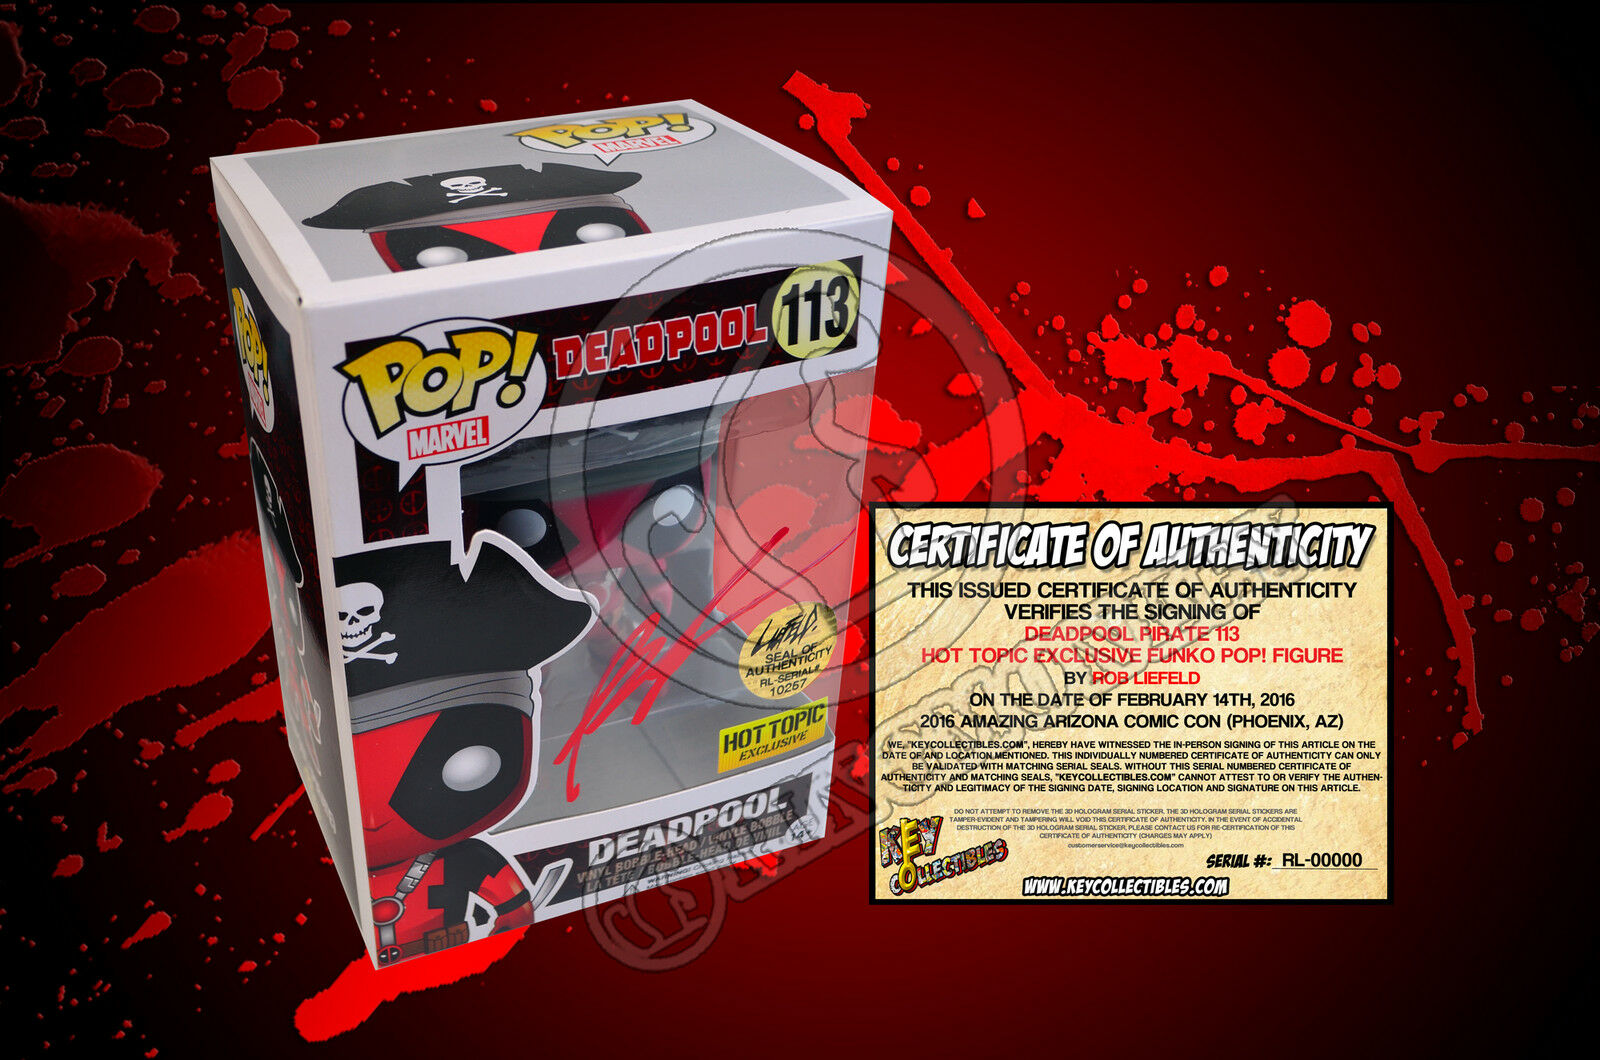 Deadpool Pirate 113 Hot Topic Exclusive Funko POP  Figure  SIGNED BY ROB LIEFELD